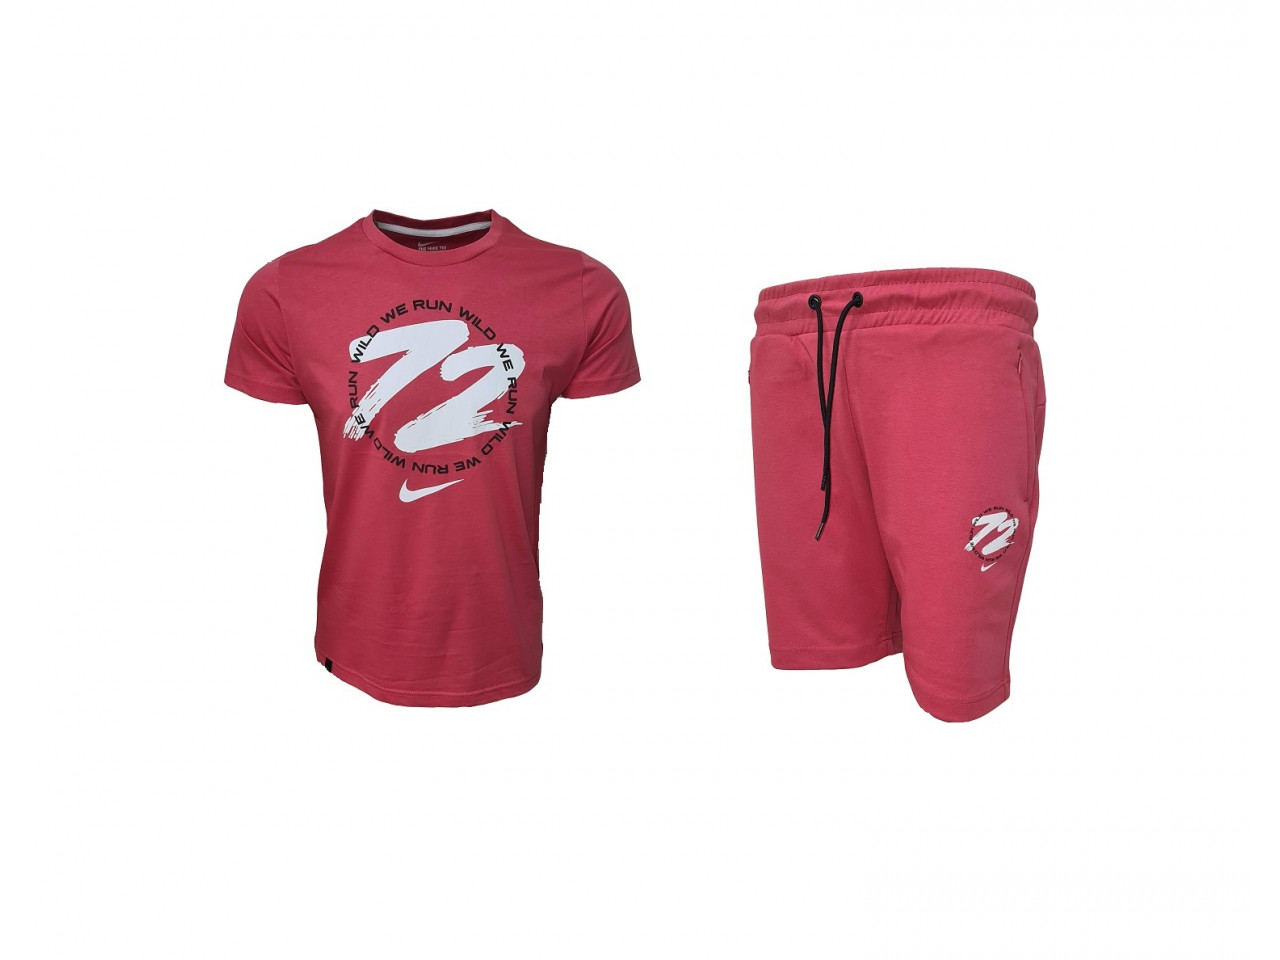 Nike 72 Shorts+ T-shirt Dark Rose